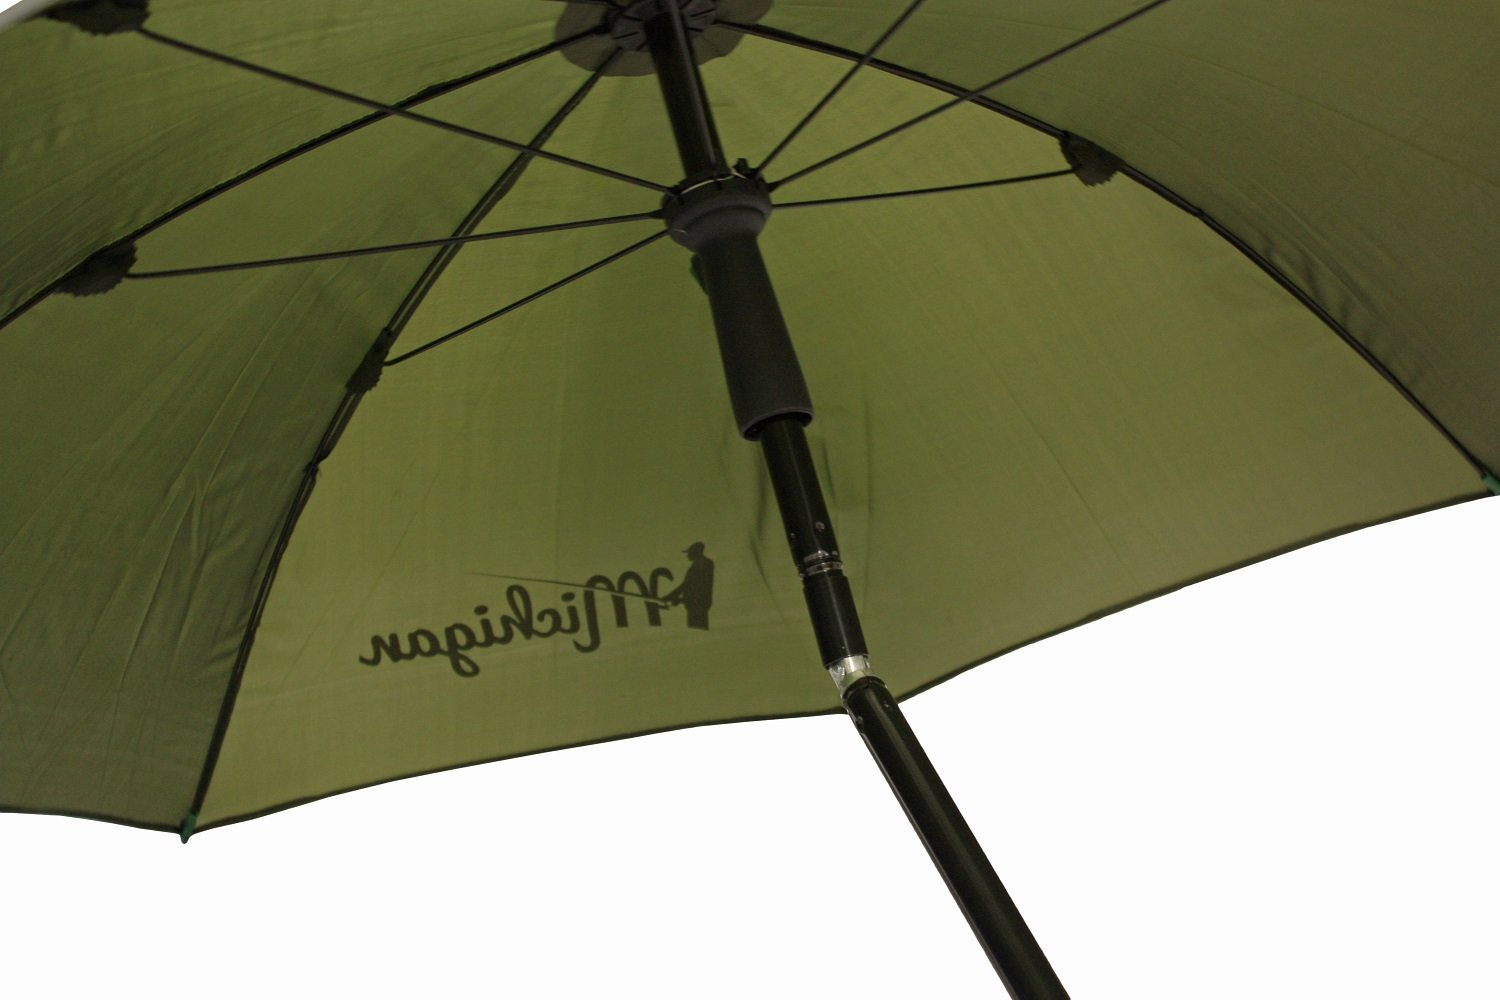 "Michigan Fishing Umbrella with Top Tilt and Sides Brolly Shelter with FREE Carry Bag, Olive Green, 50"", 60"", 75"" or 86"" 3"